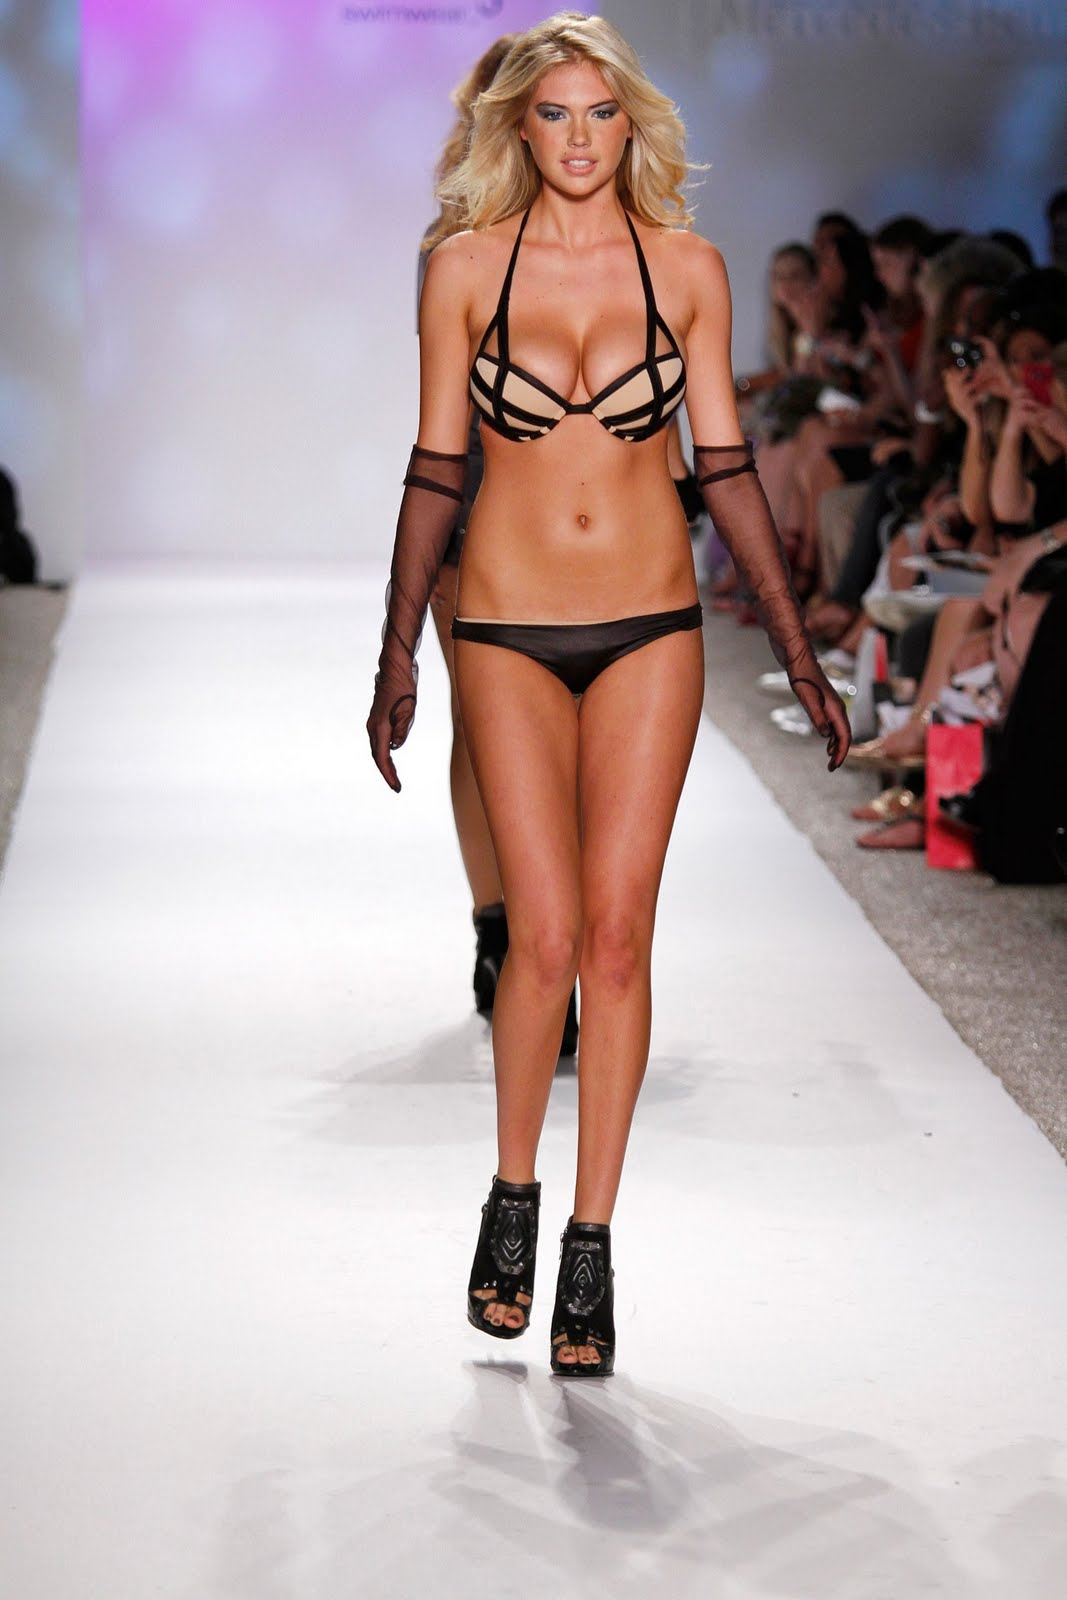 Sexy Actress Kate Upton In Beach Bunny Swimwear 2011 Fashion Show